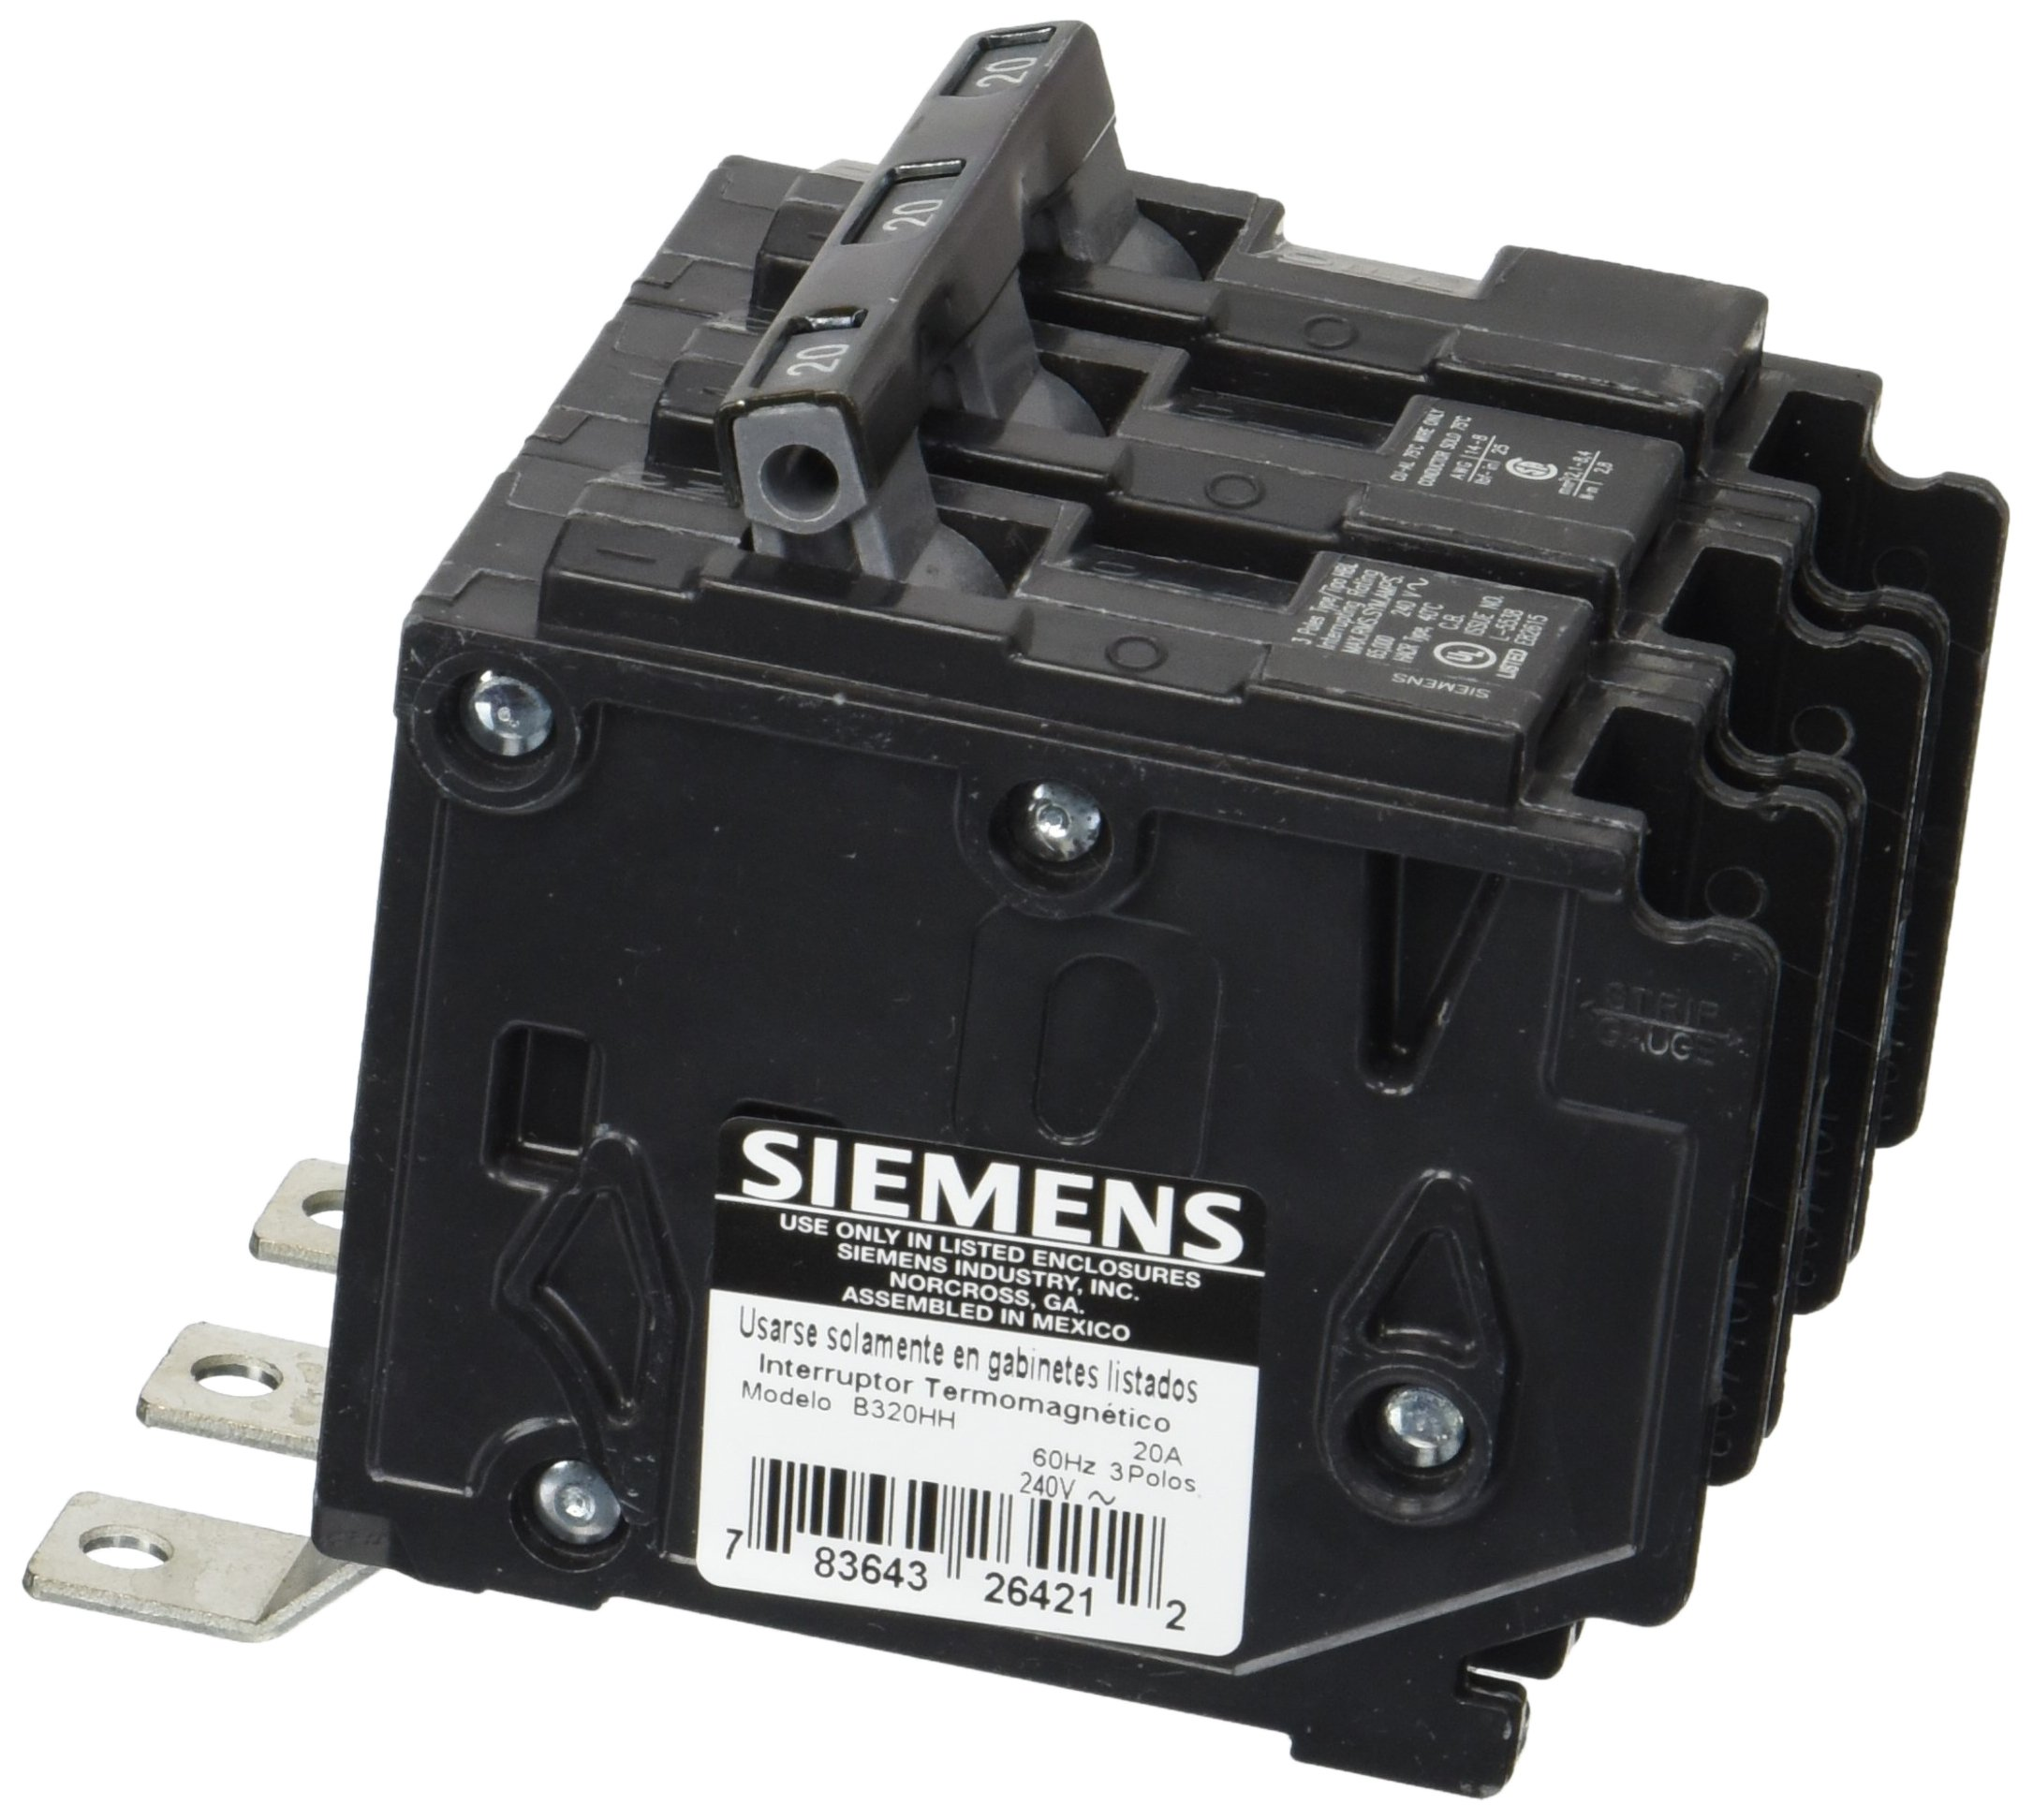 Siemens B320HH 20-Amp Three Pole 240-Volt 65KAIC Bolt in Breaker